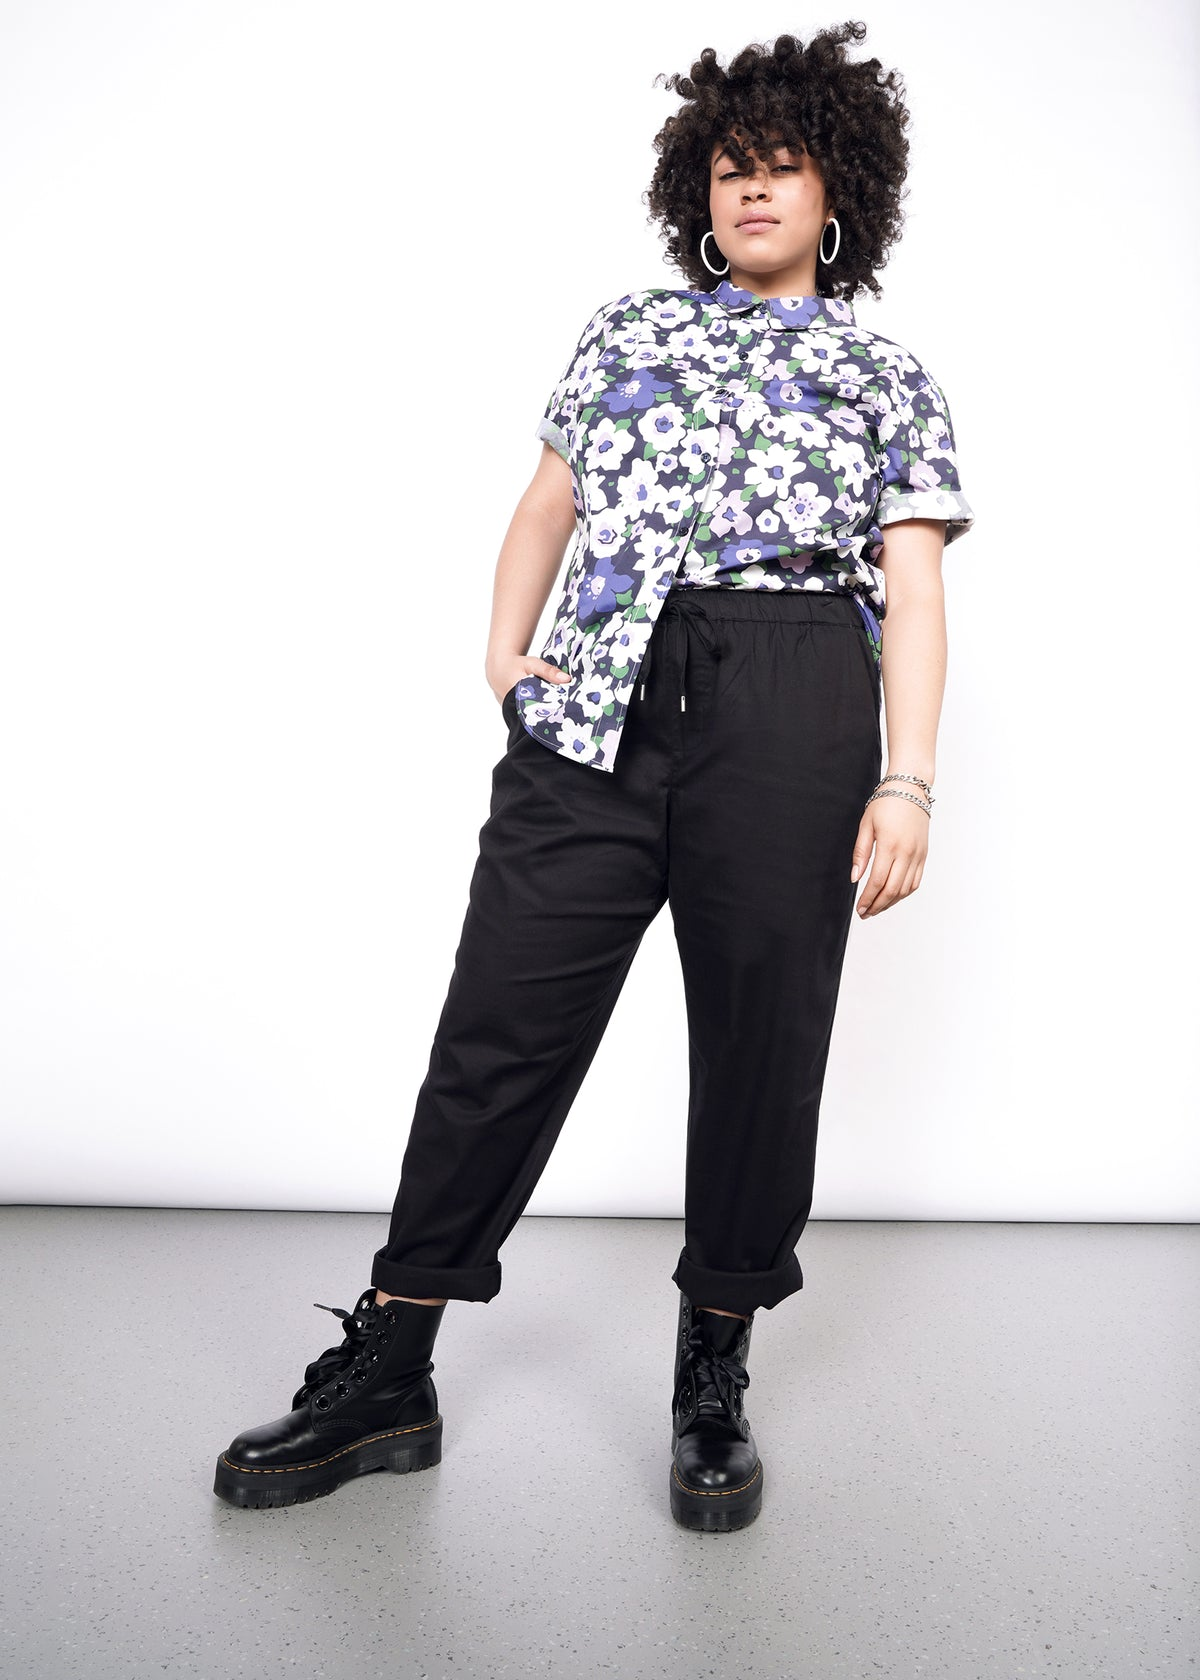 Black drawstring pant styled with floral button up shirt and black boots.